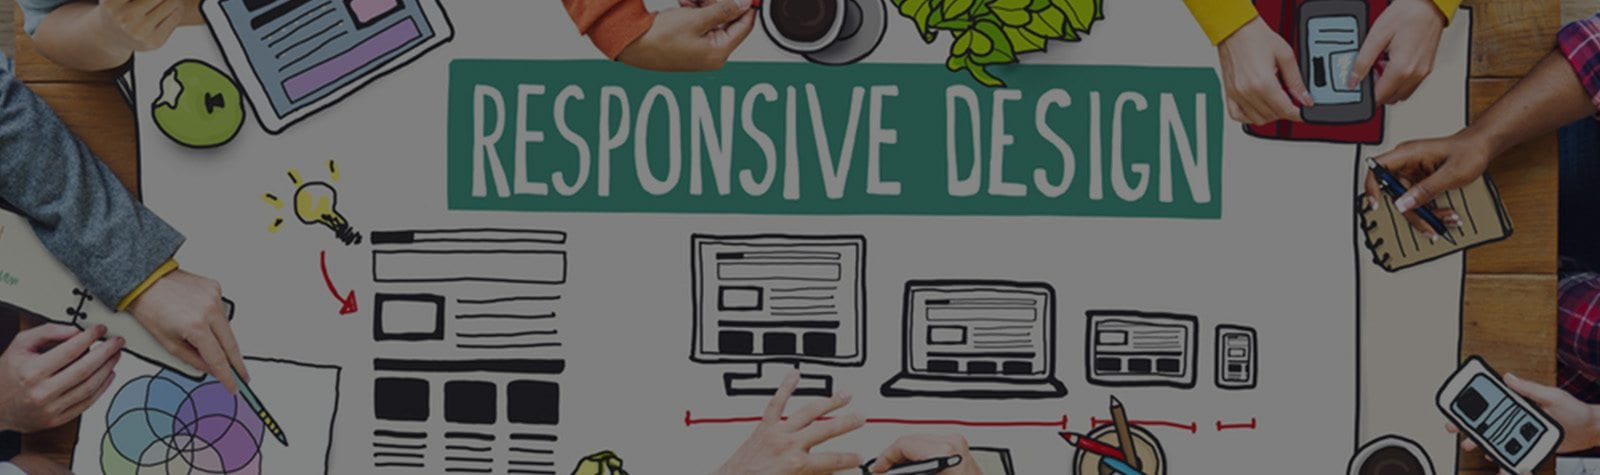 Web Design 101: Make sure your site is responsive